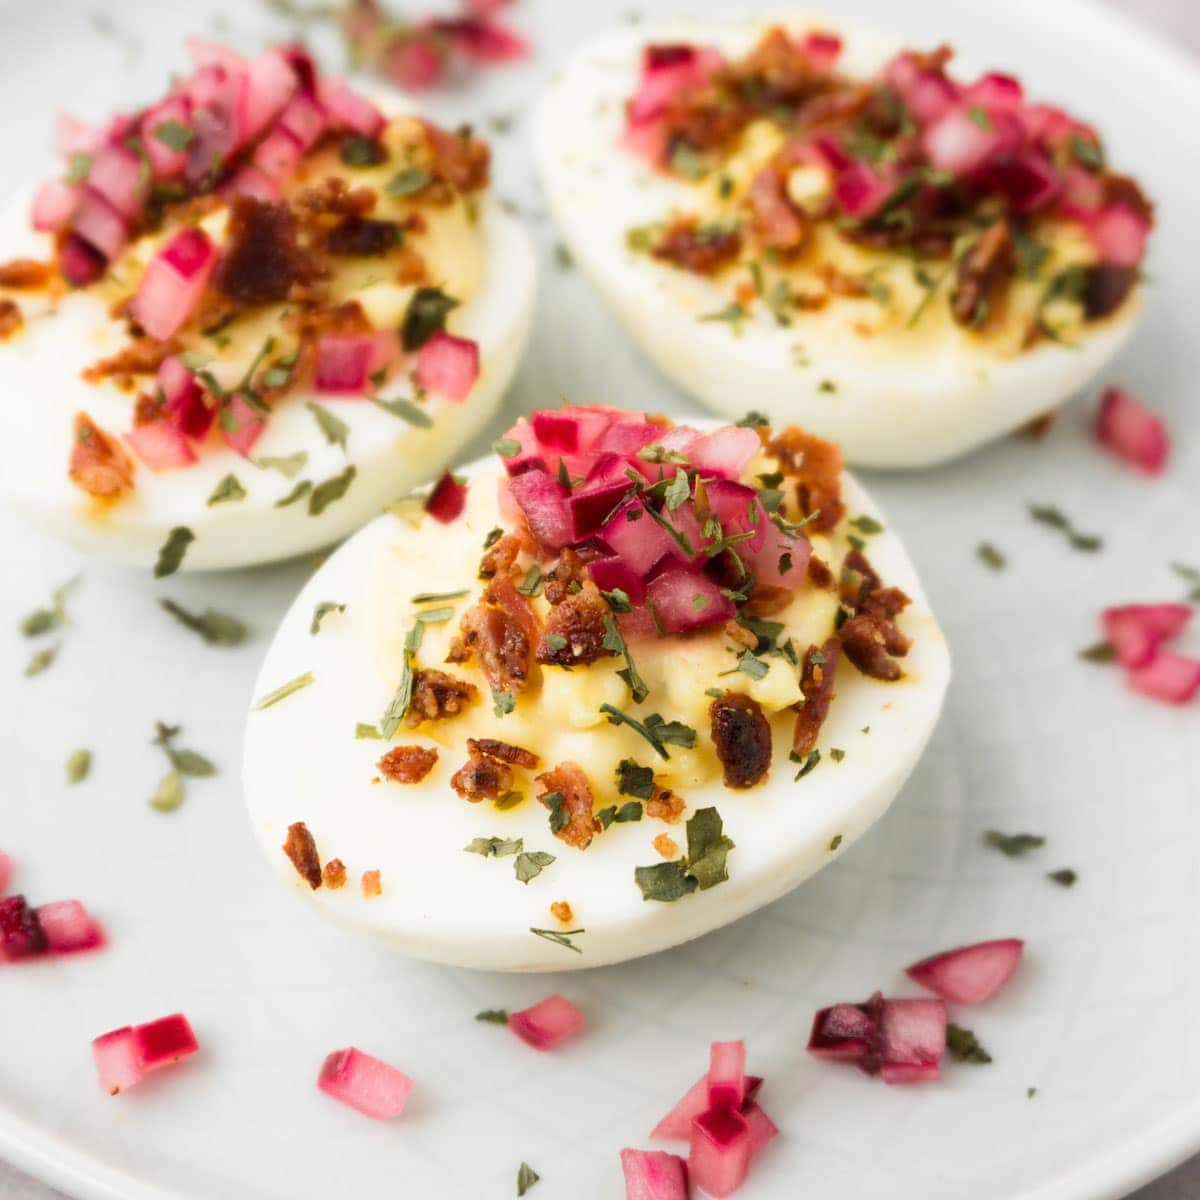 Close up shot of deviled eggs garnished with crispy bacon bits and pickled red onions.